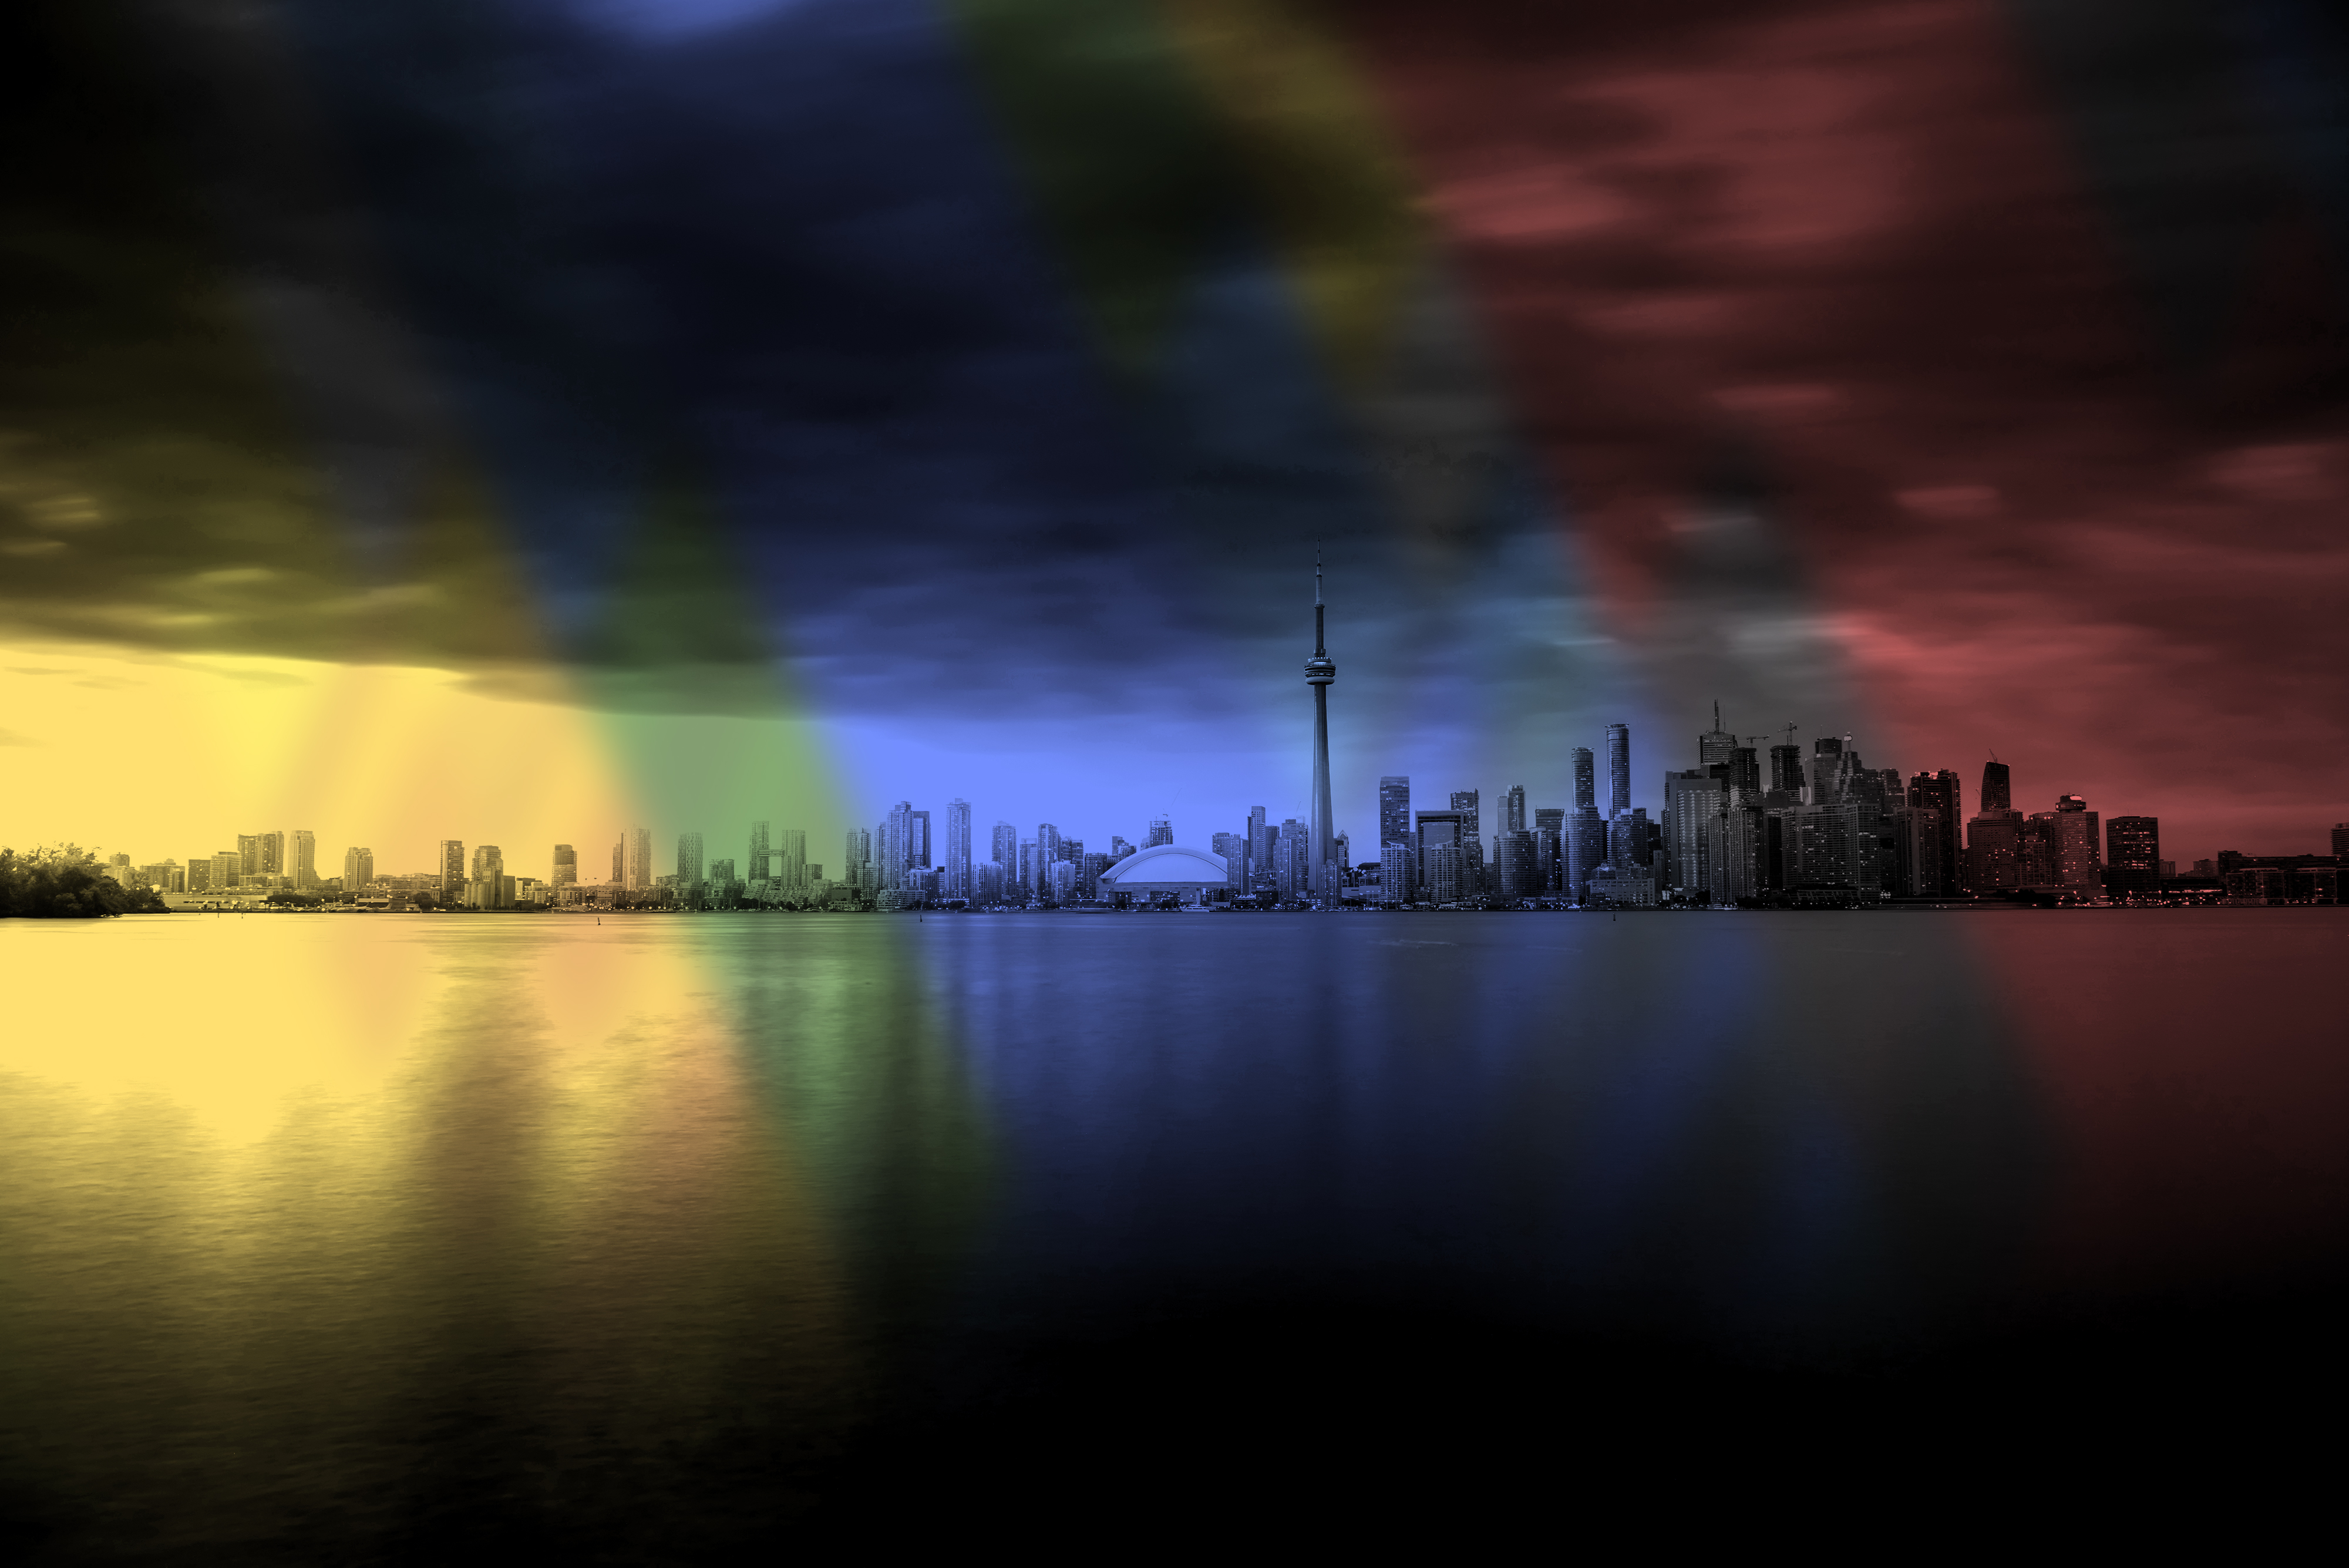 toronto-city-skyline-at-night-ontario-ca